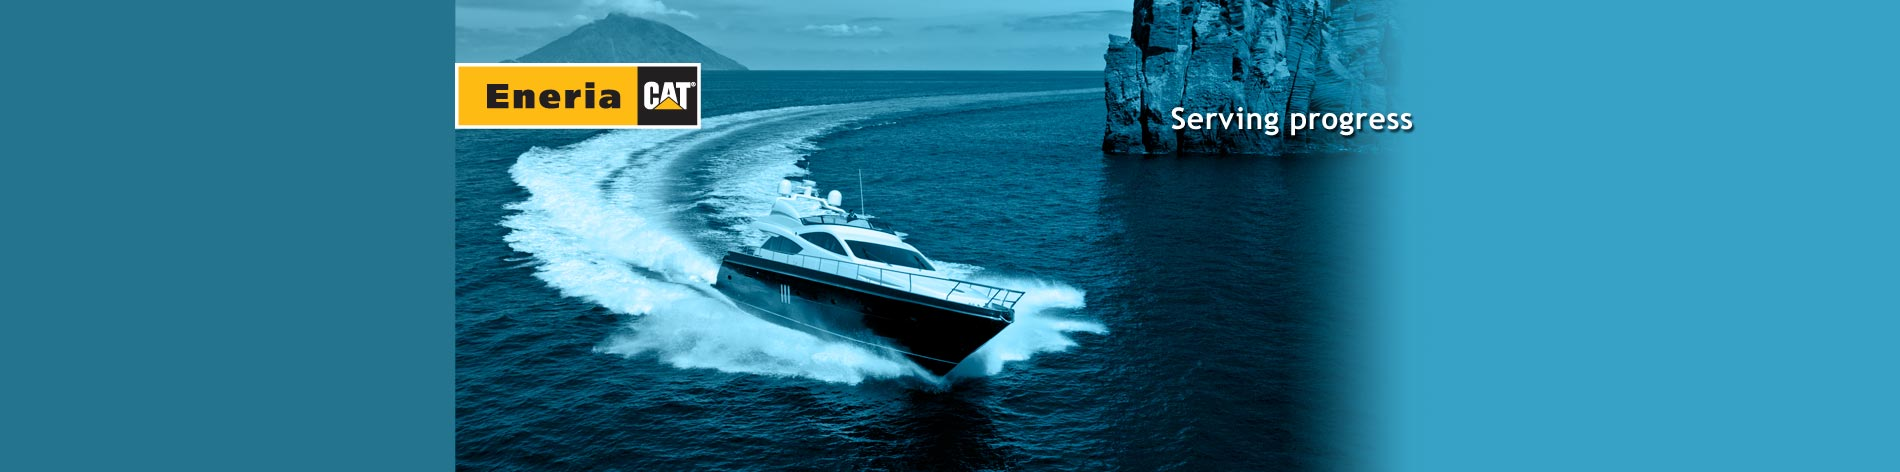 Our Caterpillar marine engines are suited to a variety of applications. Our testimonials speak for themselves.